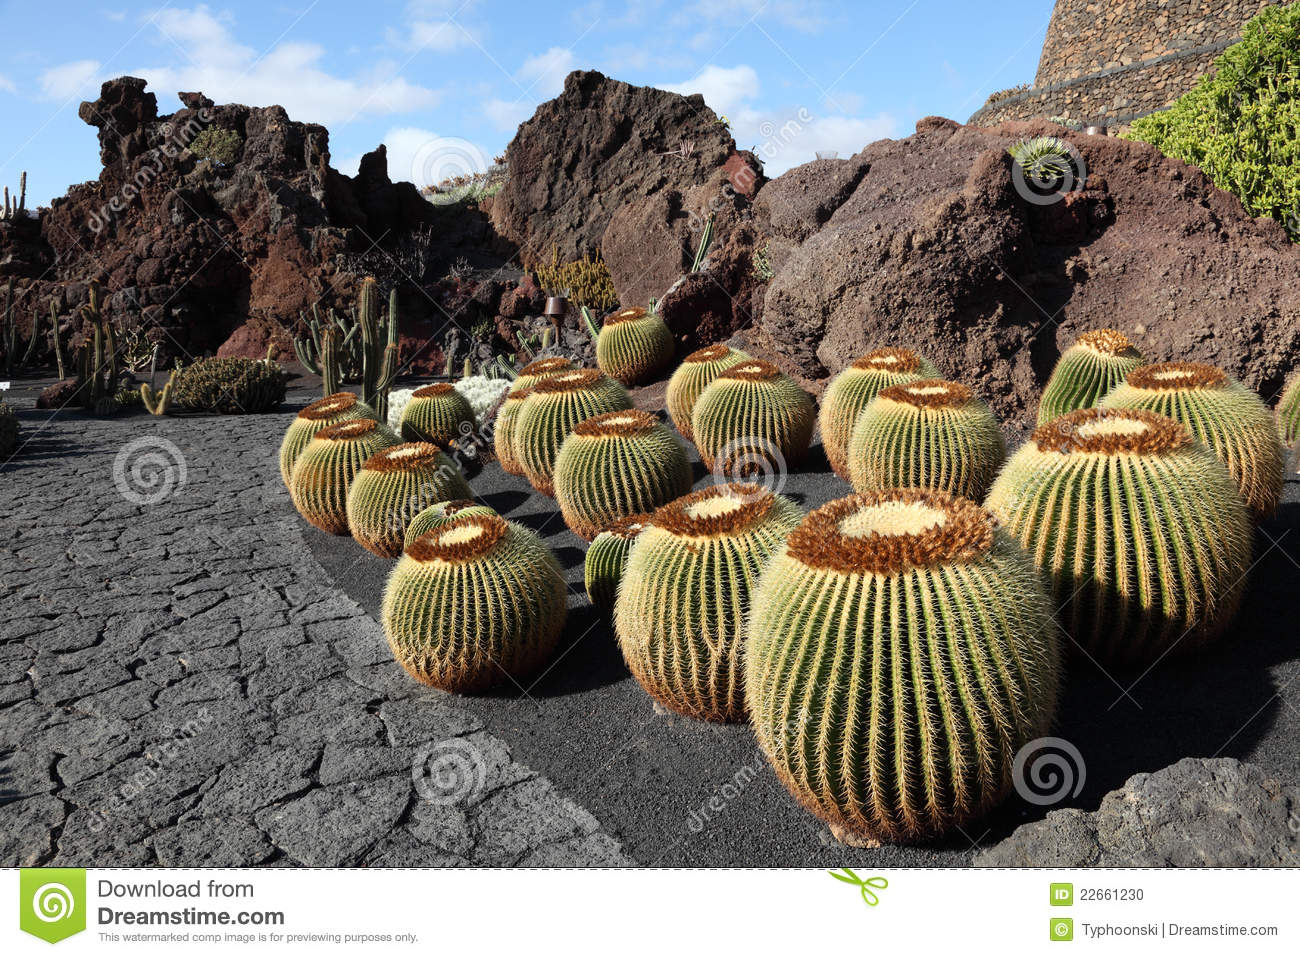 Cactus garden lanzarote spain stock photo image 22661230 for Jardin cactus lanzarote